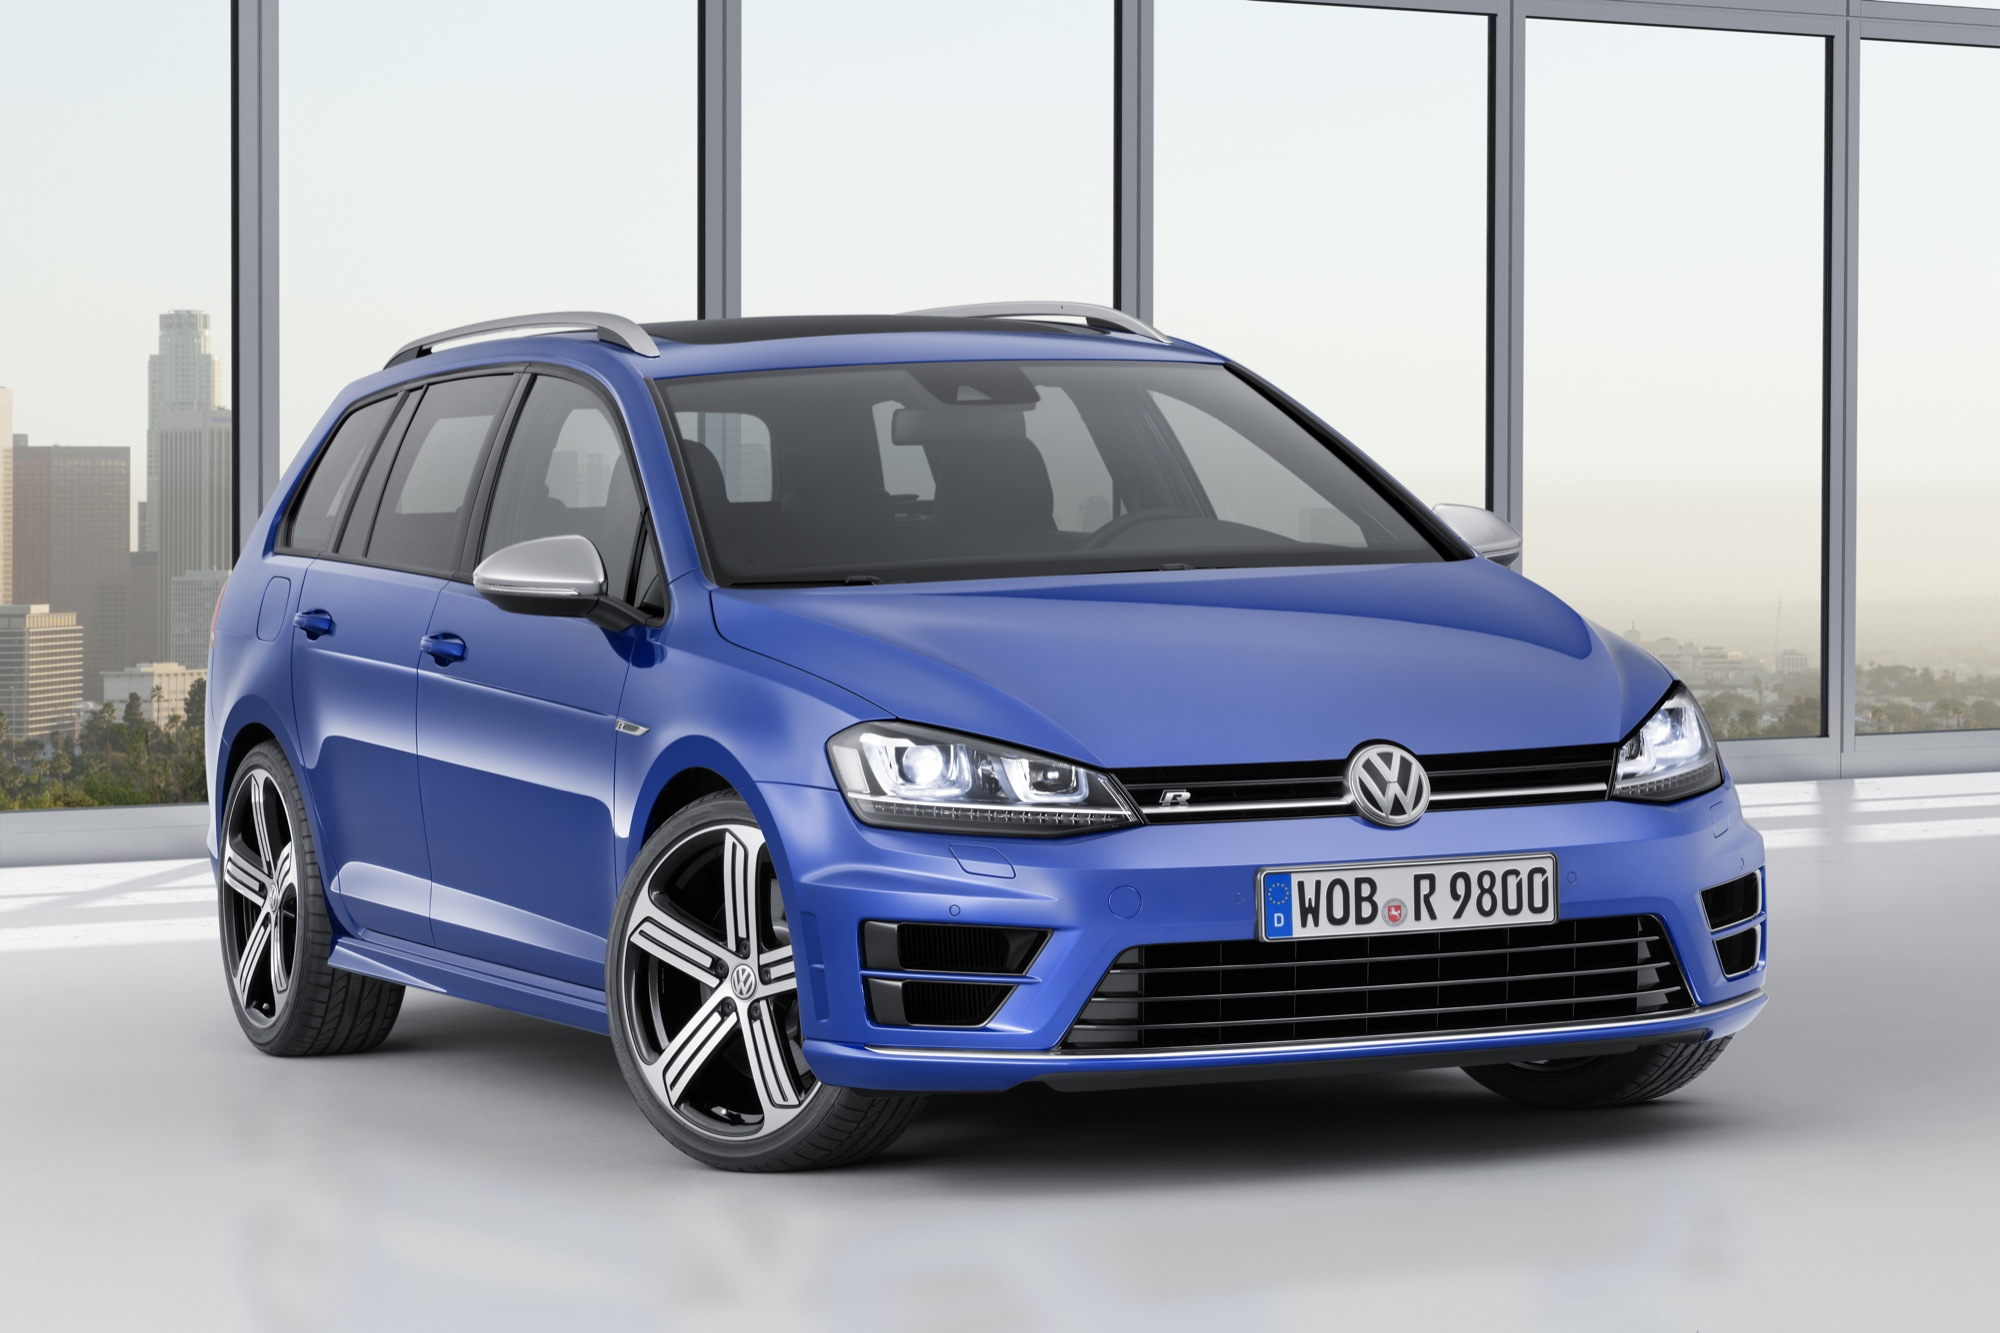 2016 volkswagen golf r variant motrolix. Black Bedroom Furniture Sets. Home Design Ideas